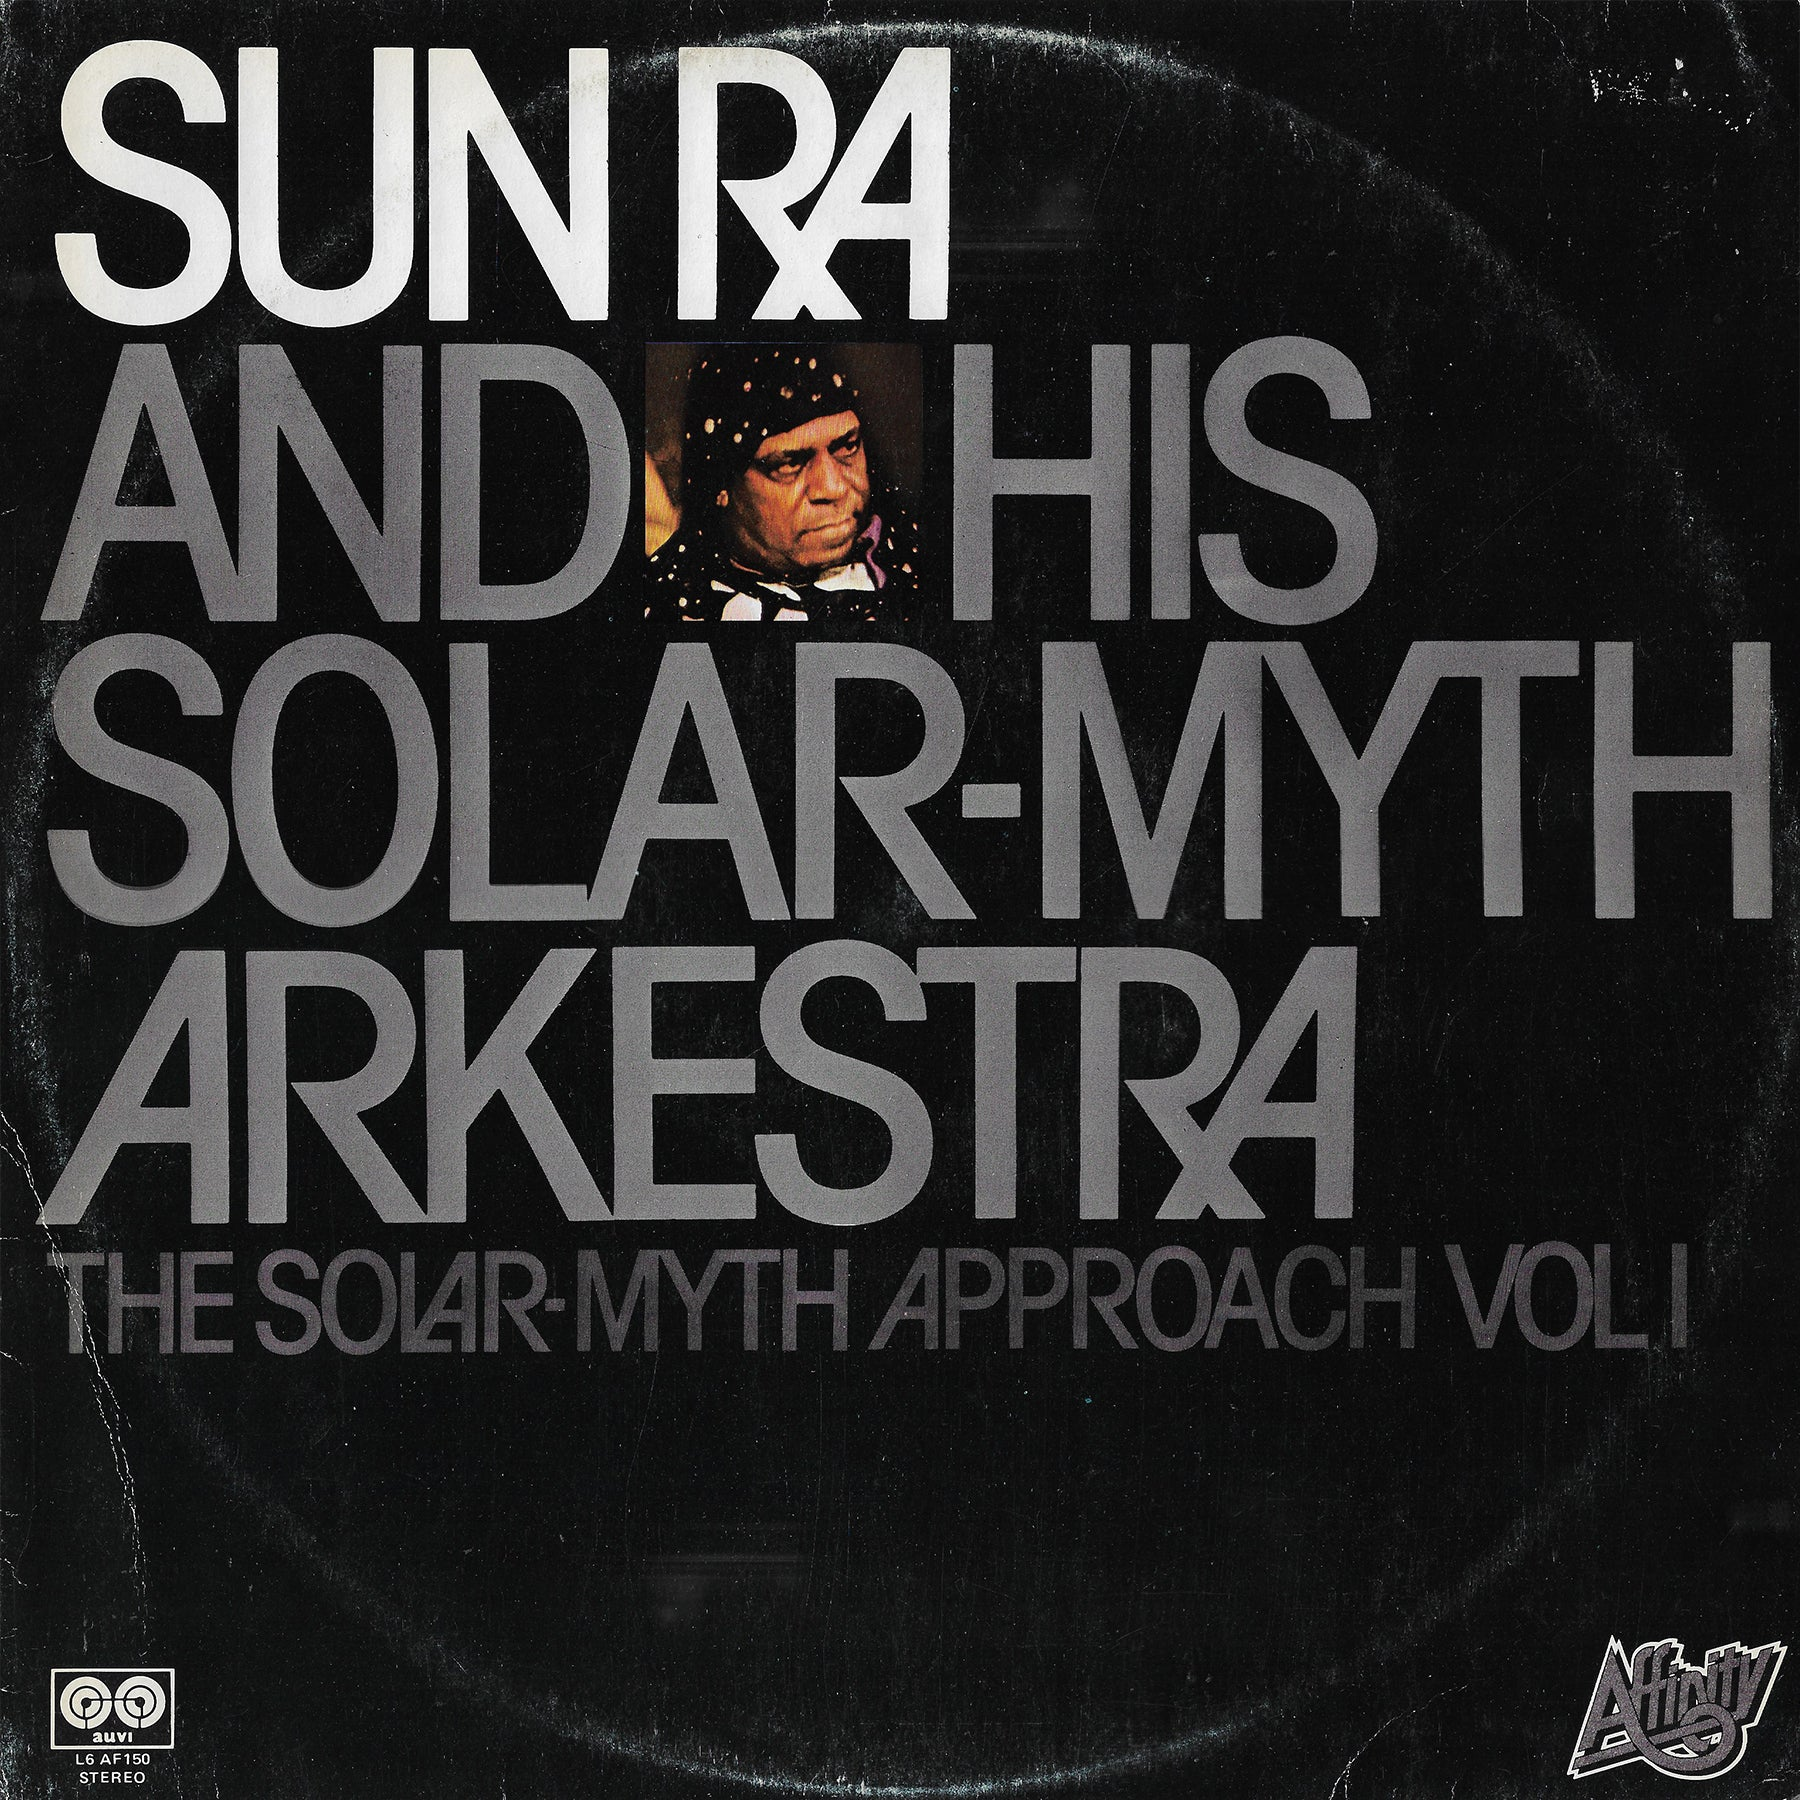 Sun Ra & His Solar-Myth Arkestra - The Solar-Myth Approach Vol. 1